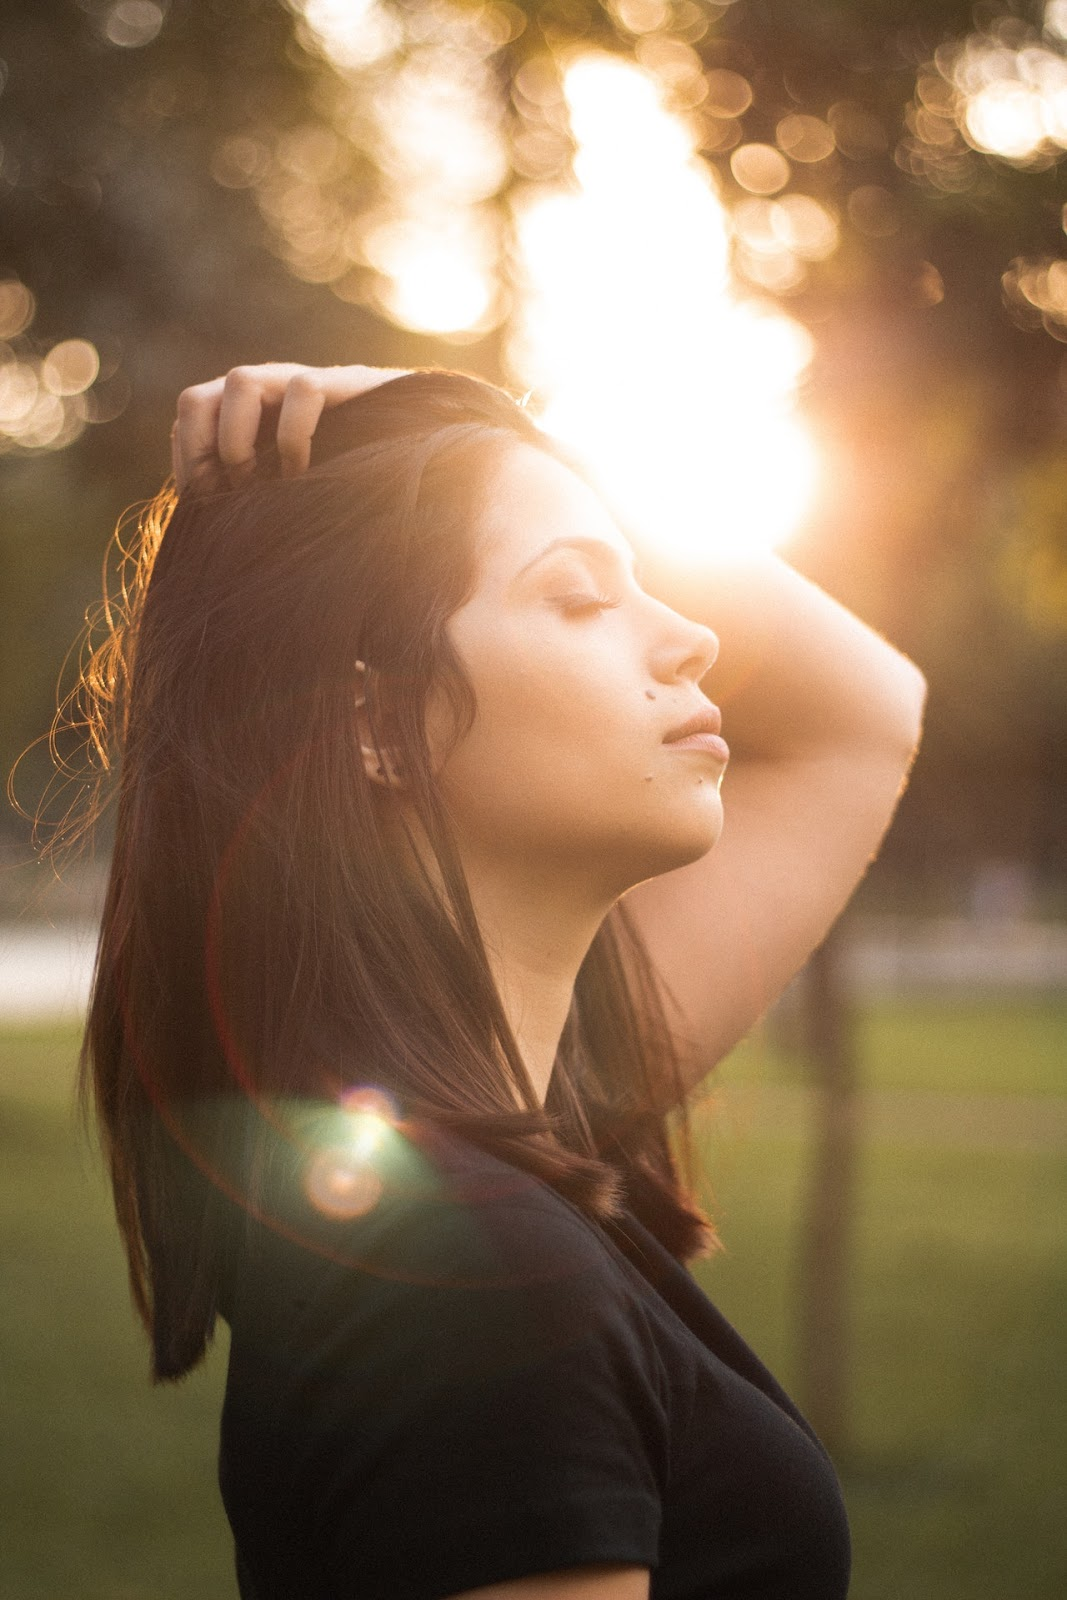 woman in sunlight breathing with eyes closed